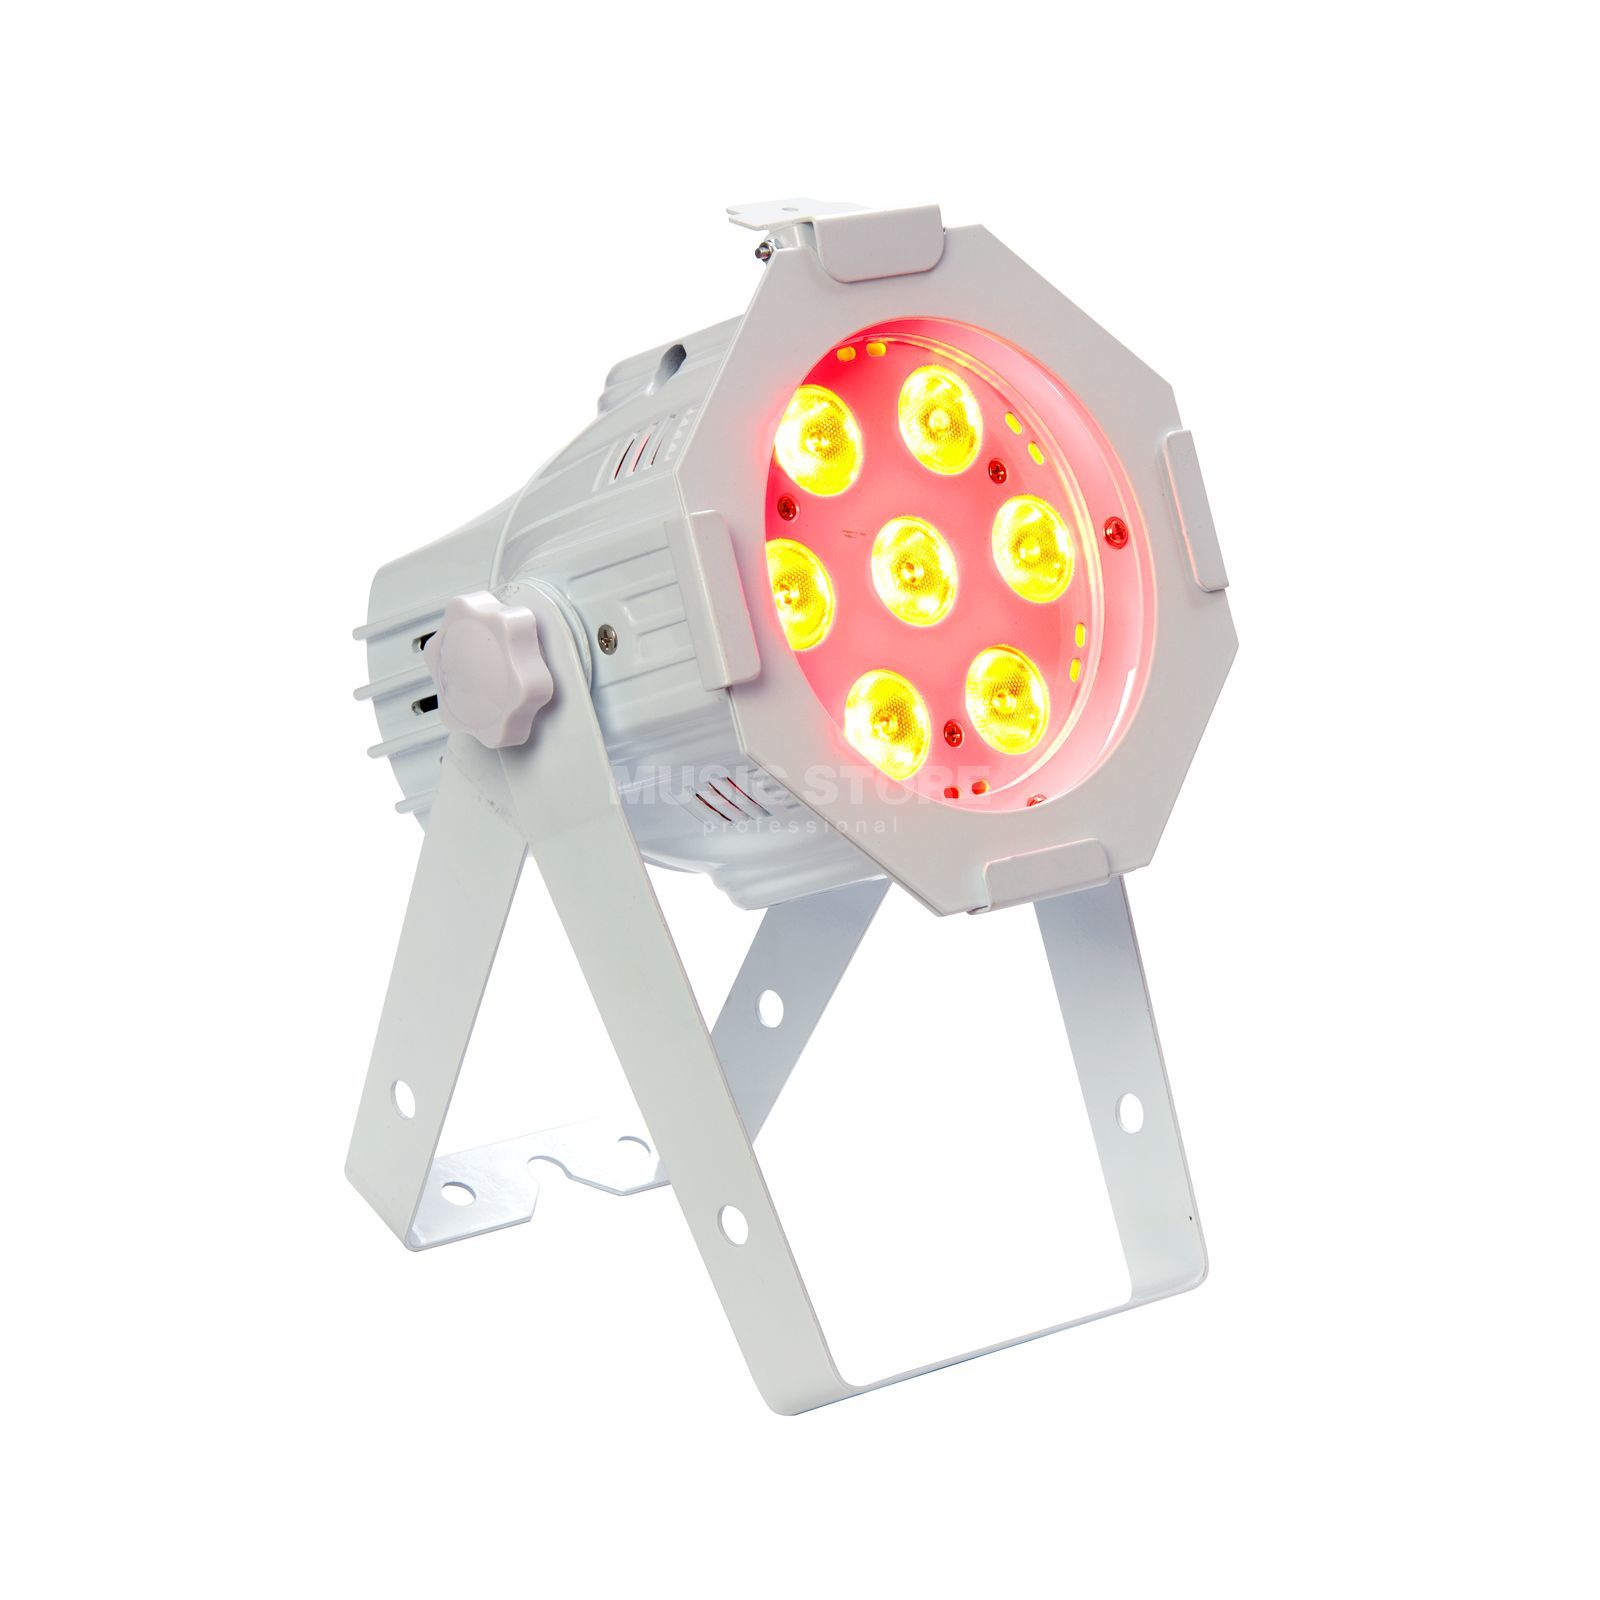 lightmaXX Platinum LED MINI PAR QUAD-W 7x8W RGBW, white Produktbild